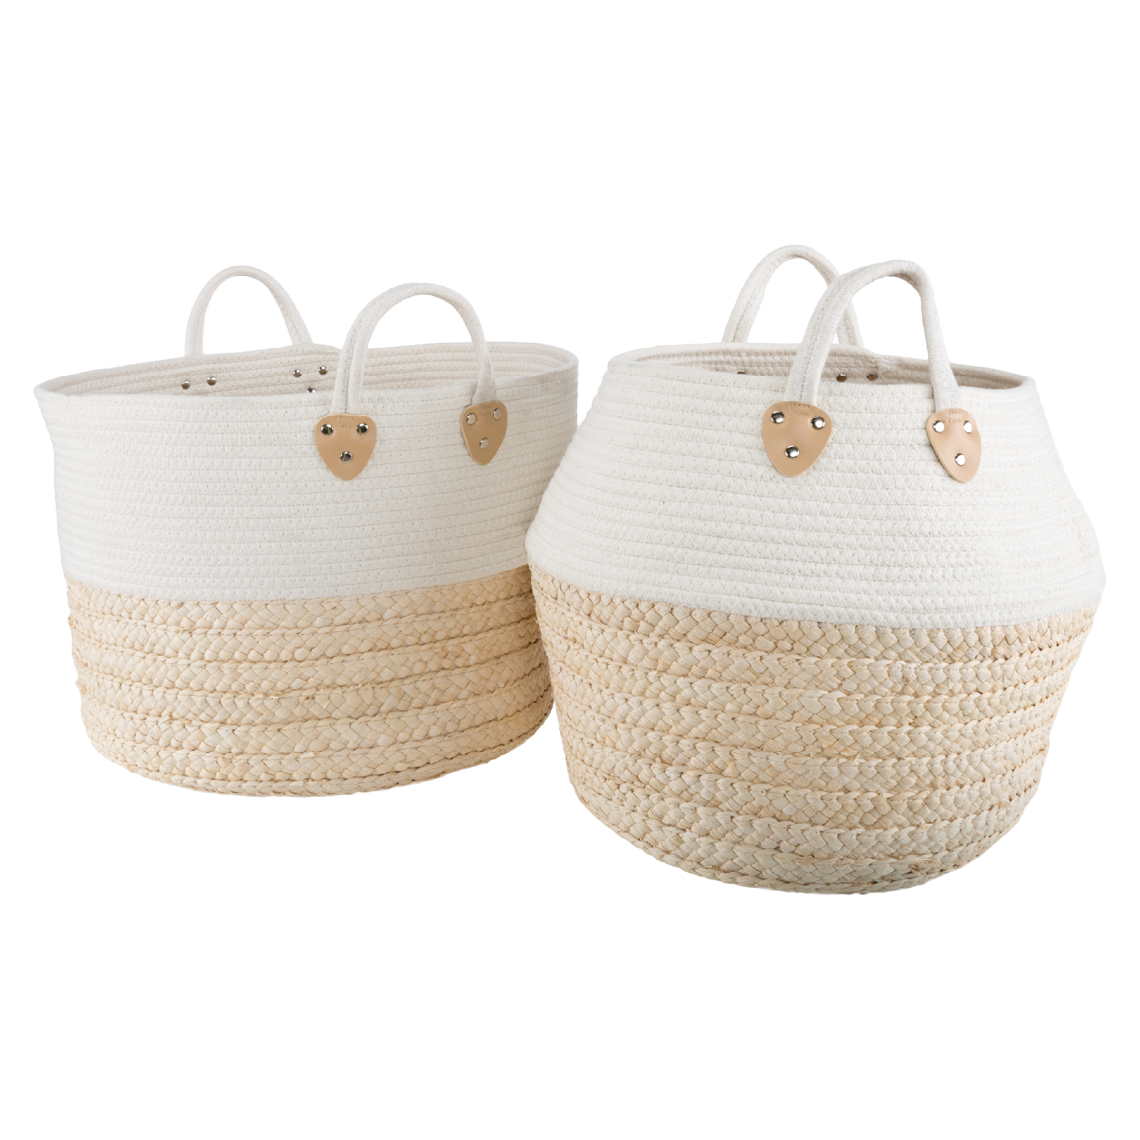 39137 Popular Category - Deep etches_Baskets.png